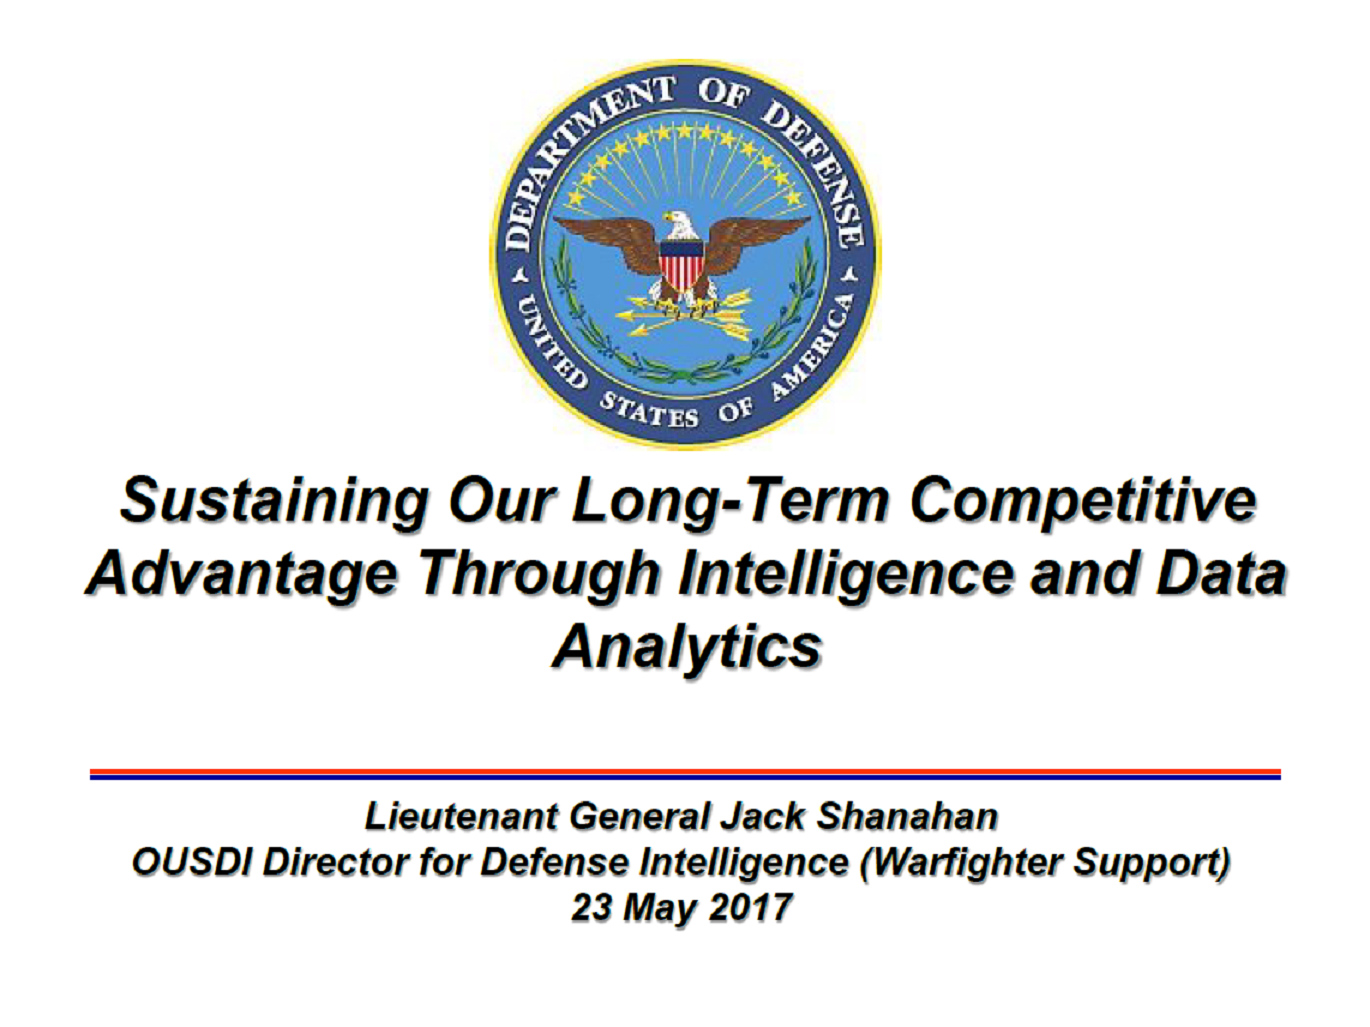 Catalyzing a New Analytics Paradigm to Support the Priorities of Defense Intelligence